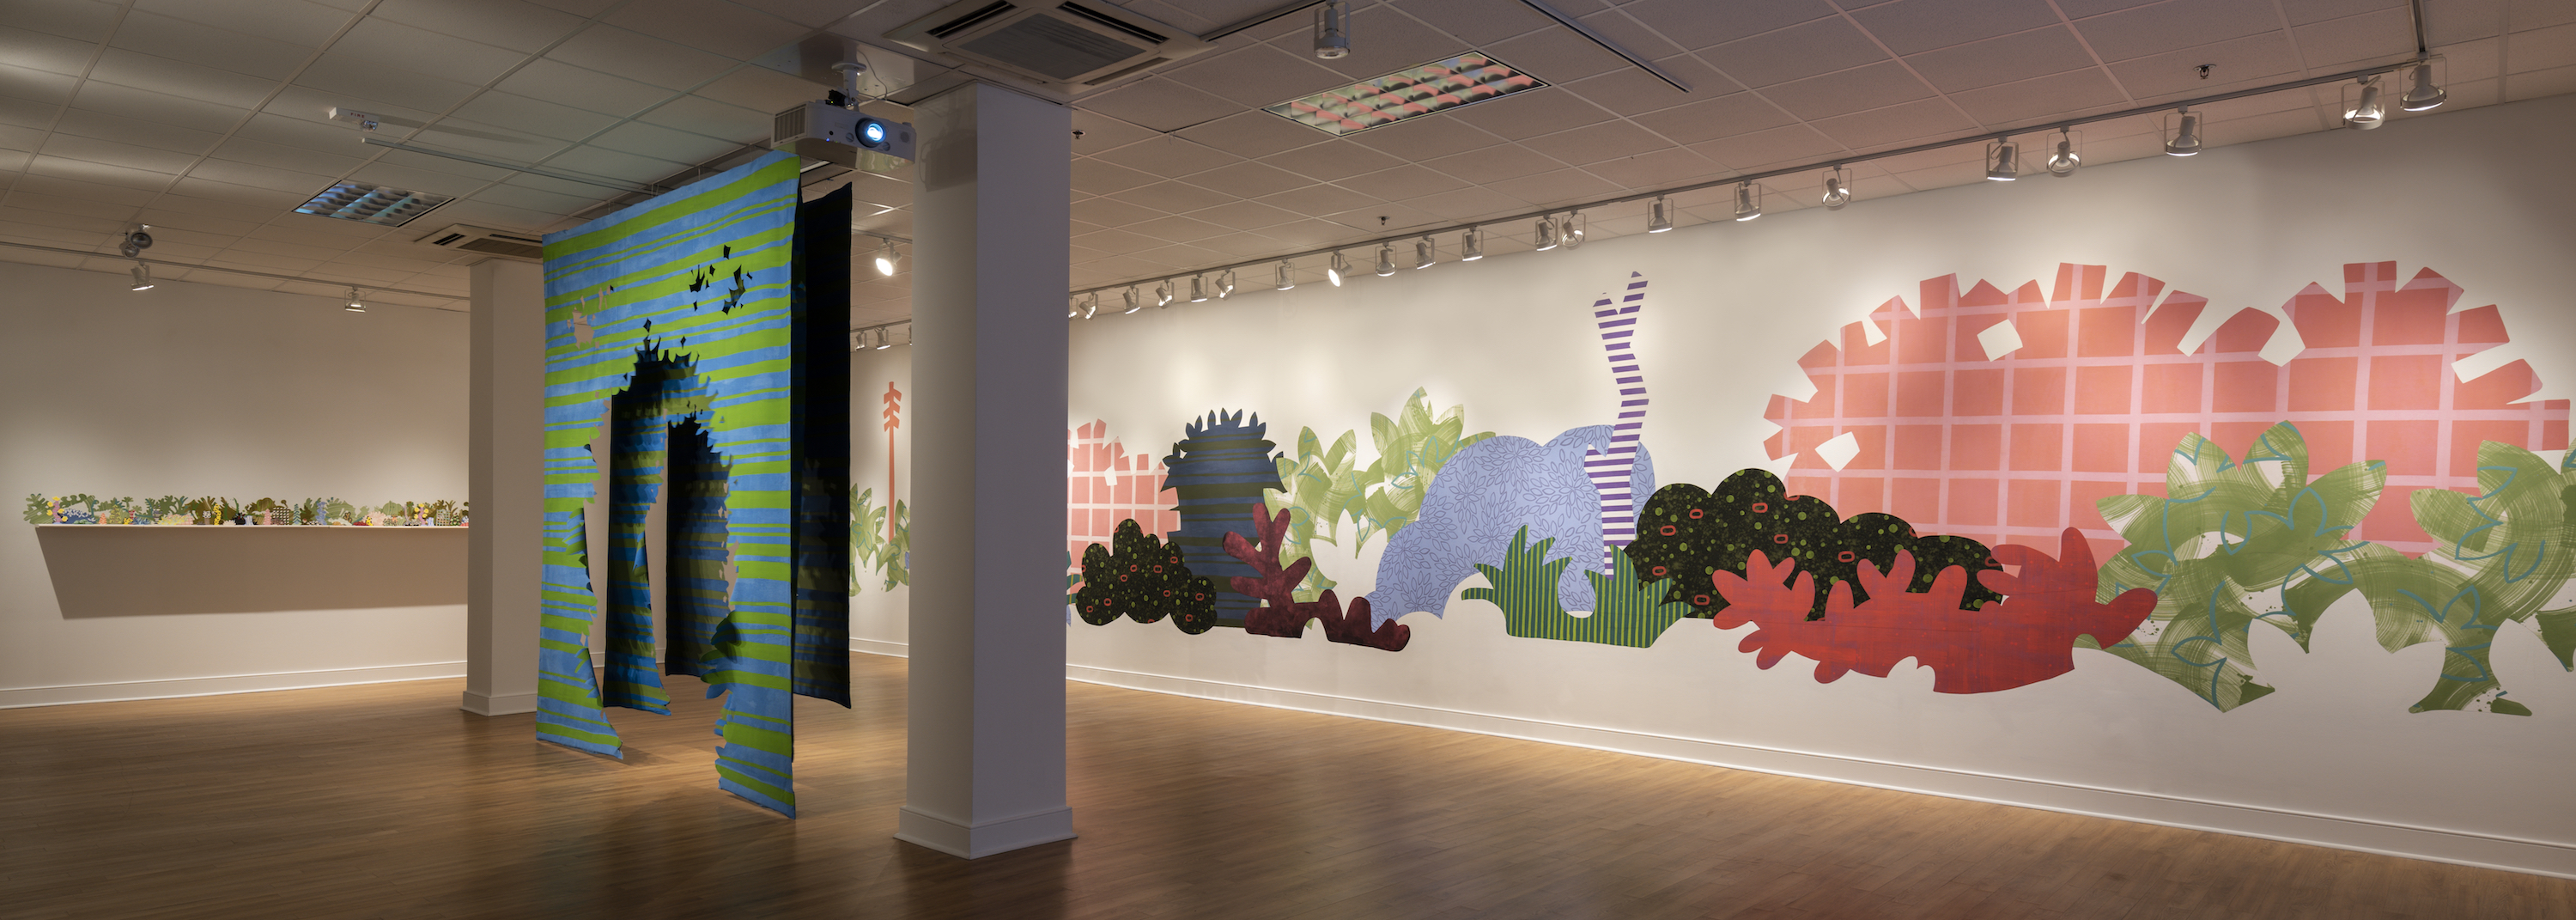 """Installation of """"Aggregate Optics of Make-A-Do"""" 2019; University of Memphis, Fogelman Galleries; From right to left: Piecemeal Promenade (2019) 48ft x 11ft; latex on muslin cut-outs, adhered to wall; Proscenium Hedgerow (2018) 11ft x 10ft x 2ft; series of three latex on cut muslin panels; Horizon Allsorts, (2018) 12ft x 1ft; (6) floating wood shelves, painted muslin, ceramic, underglaze and glaze"""